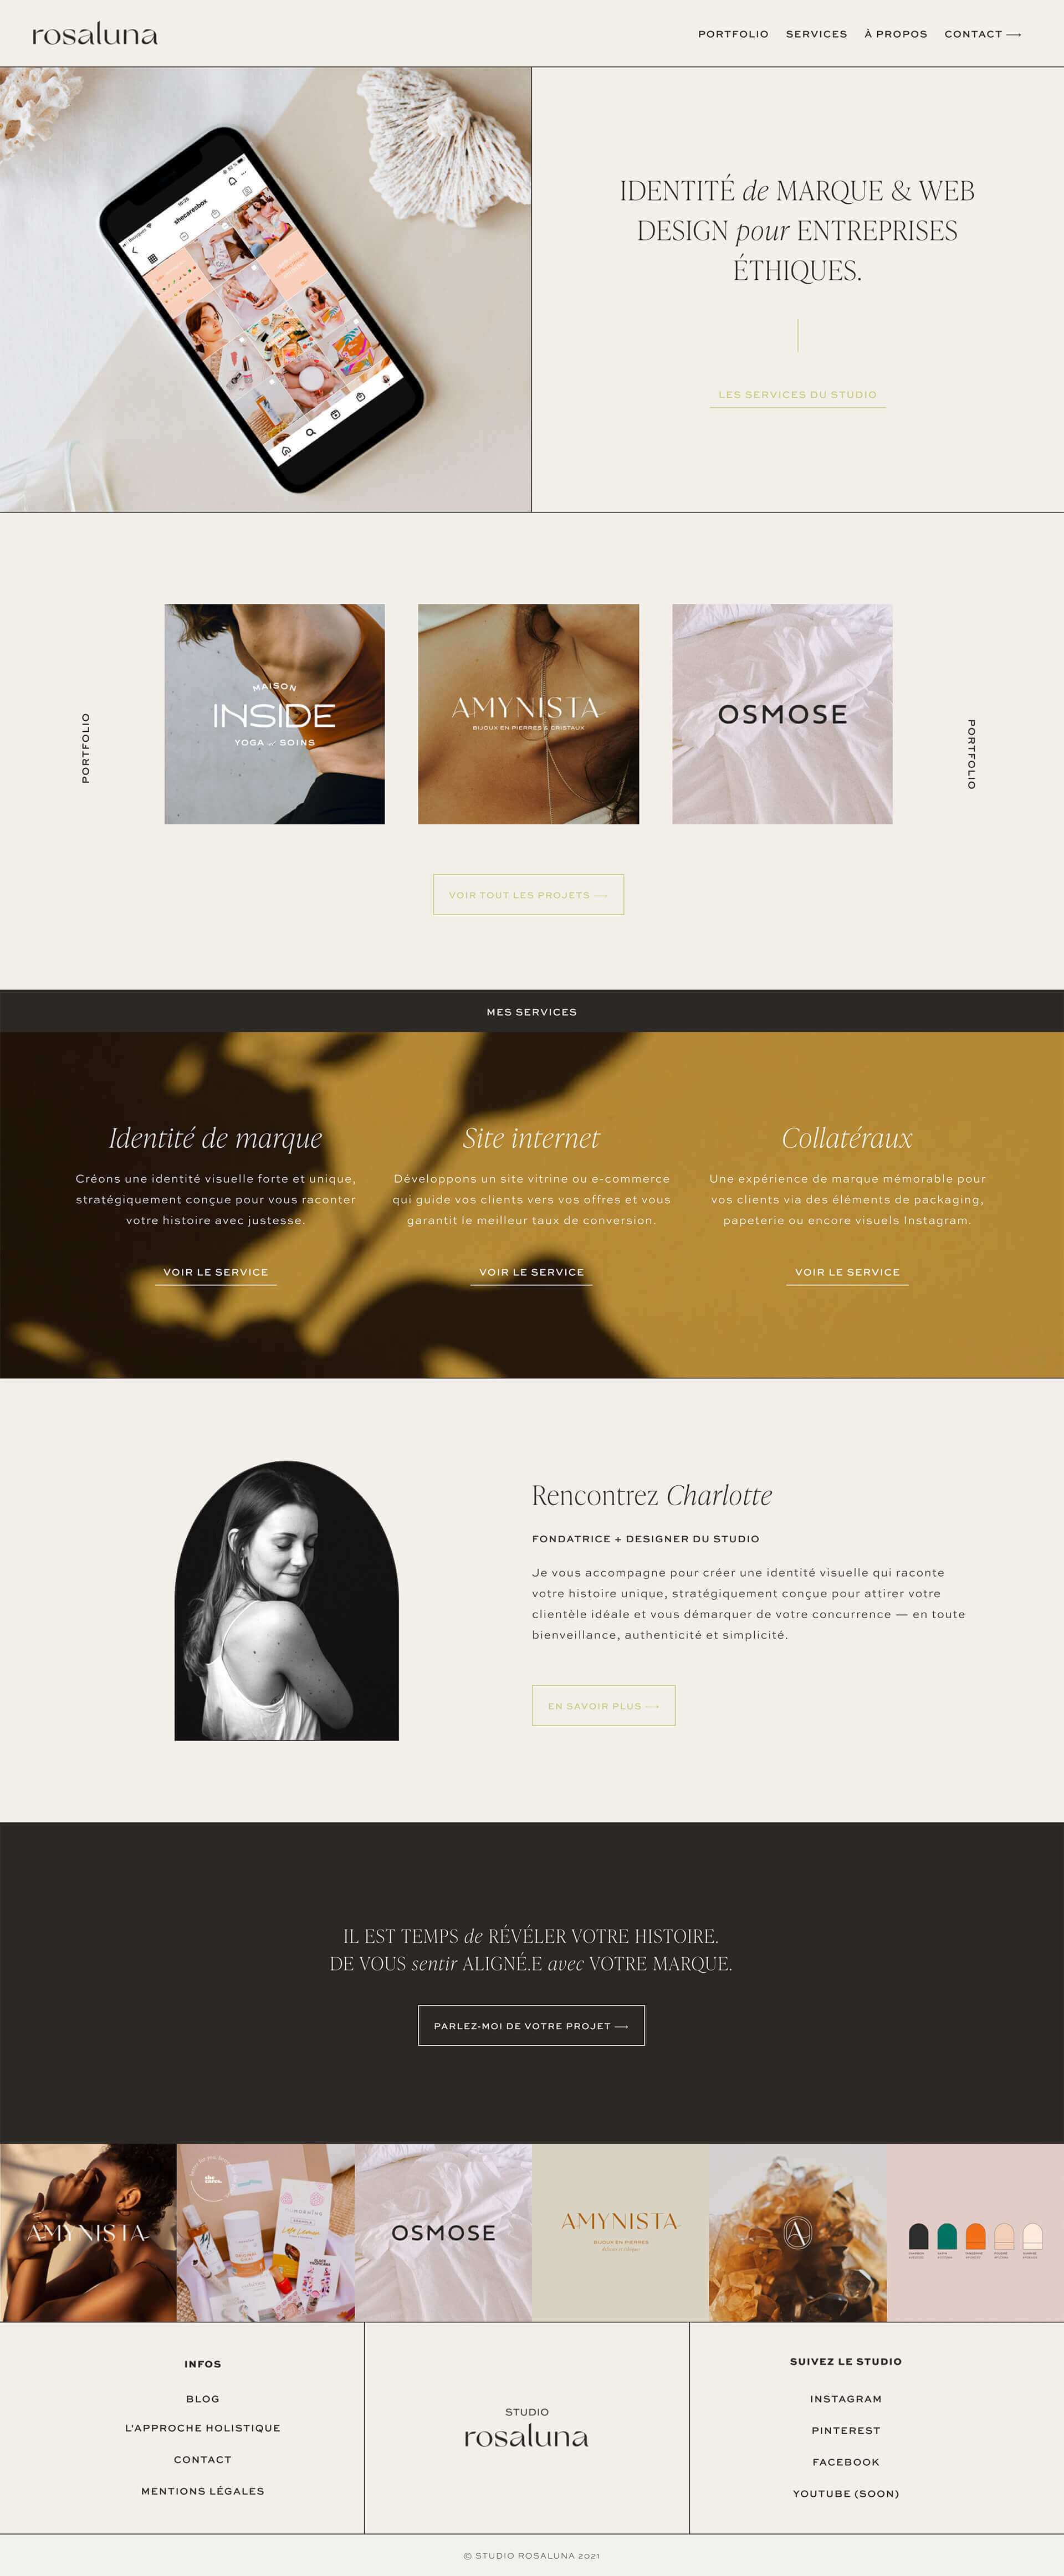 Preview image for web design and SEO project for Studio Rosaluna